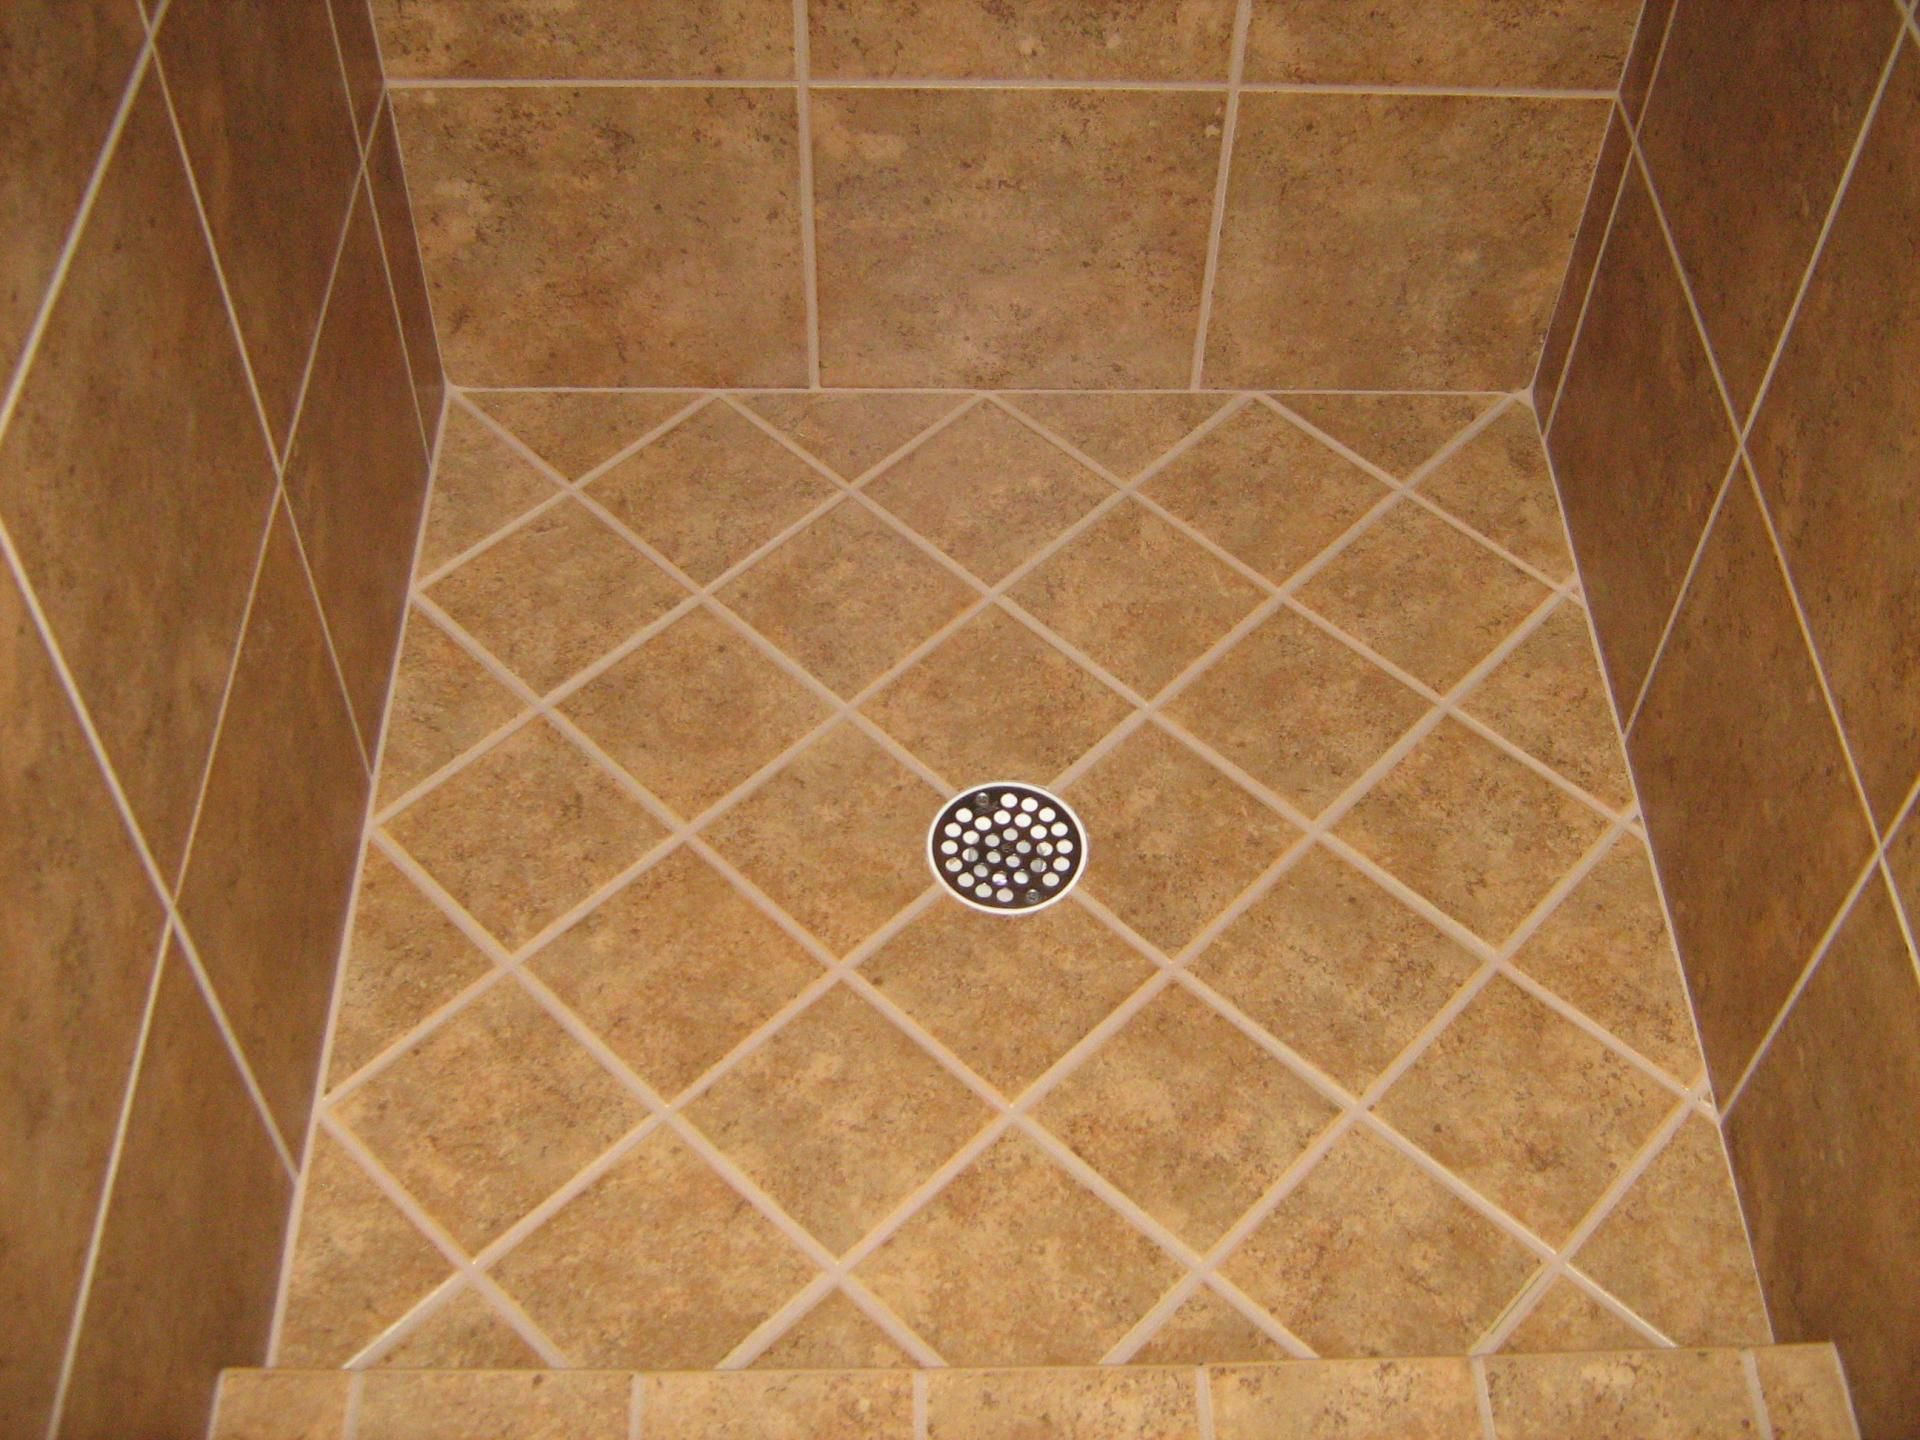 Stand Up Shower Designs Shower Tile In Small Stand Up Shower Ideas Syupendous Shower Floor